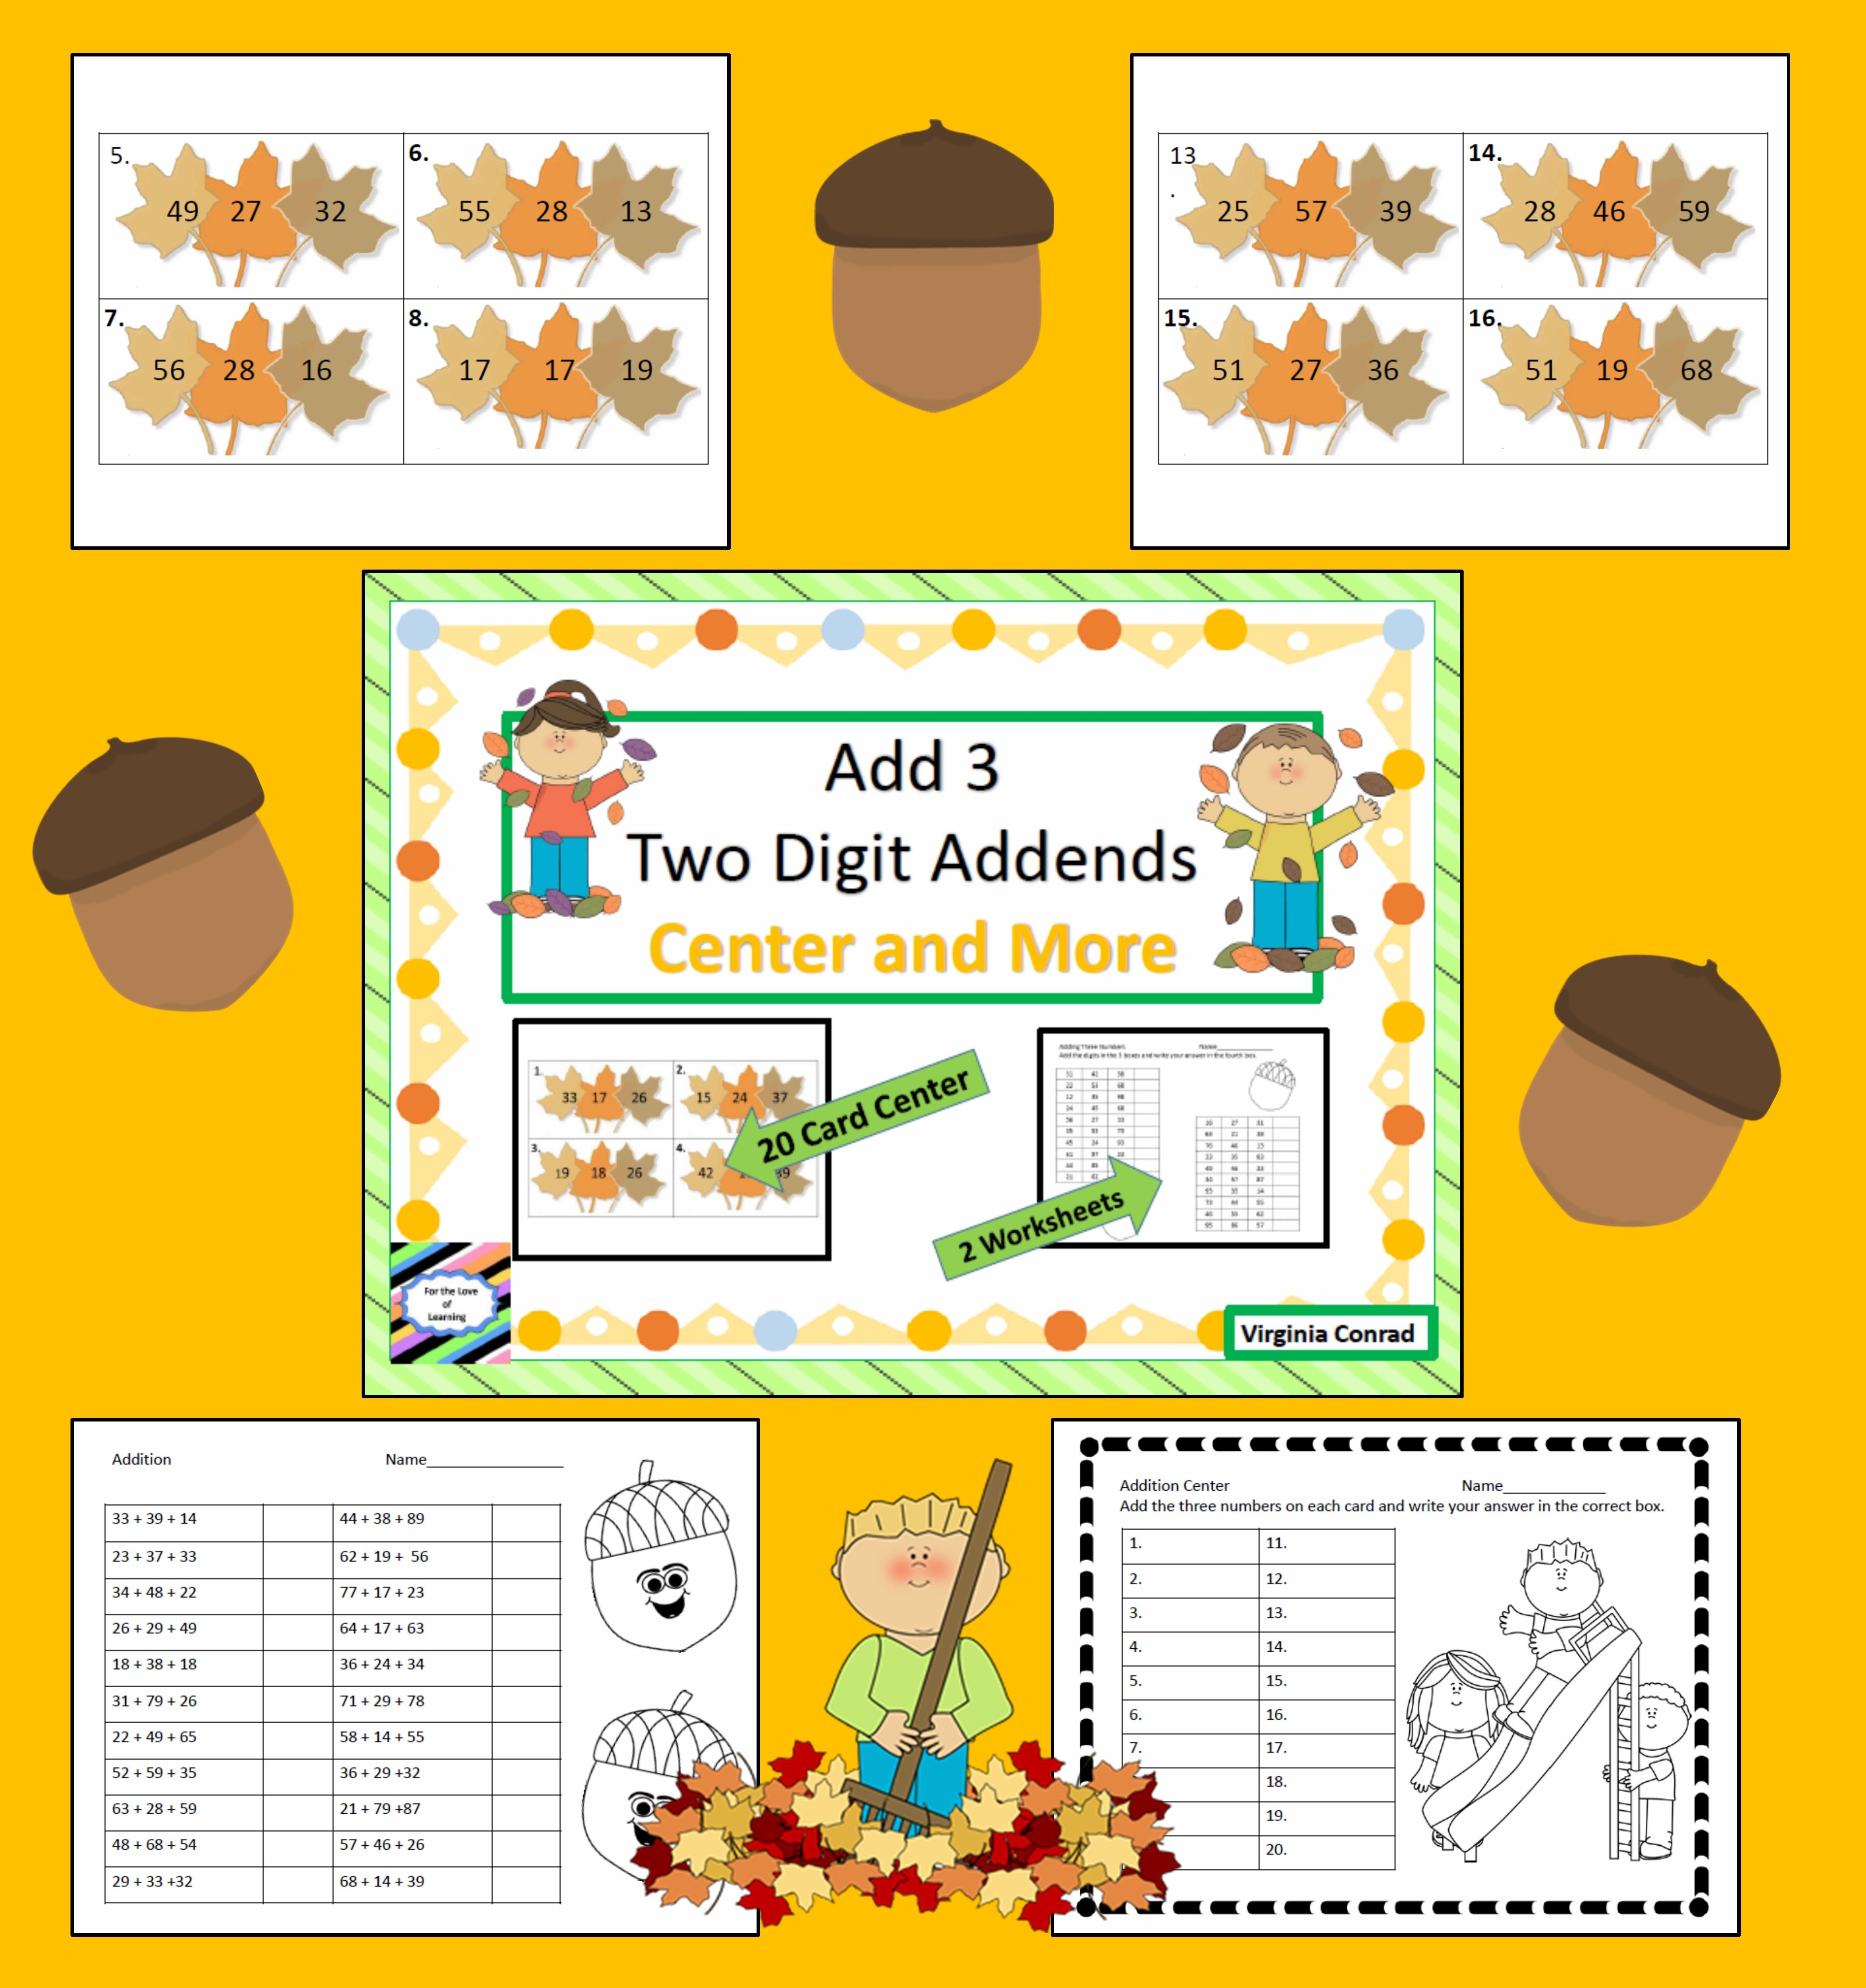 Adding 3 Two Digit Addends Fall Theme